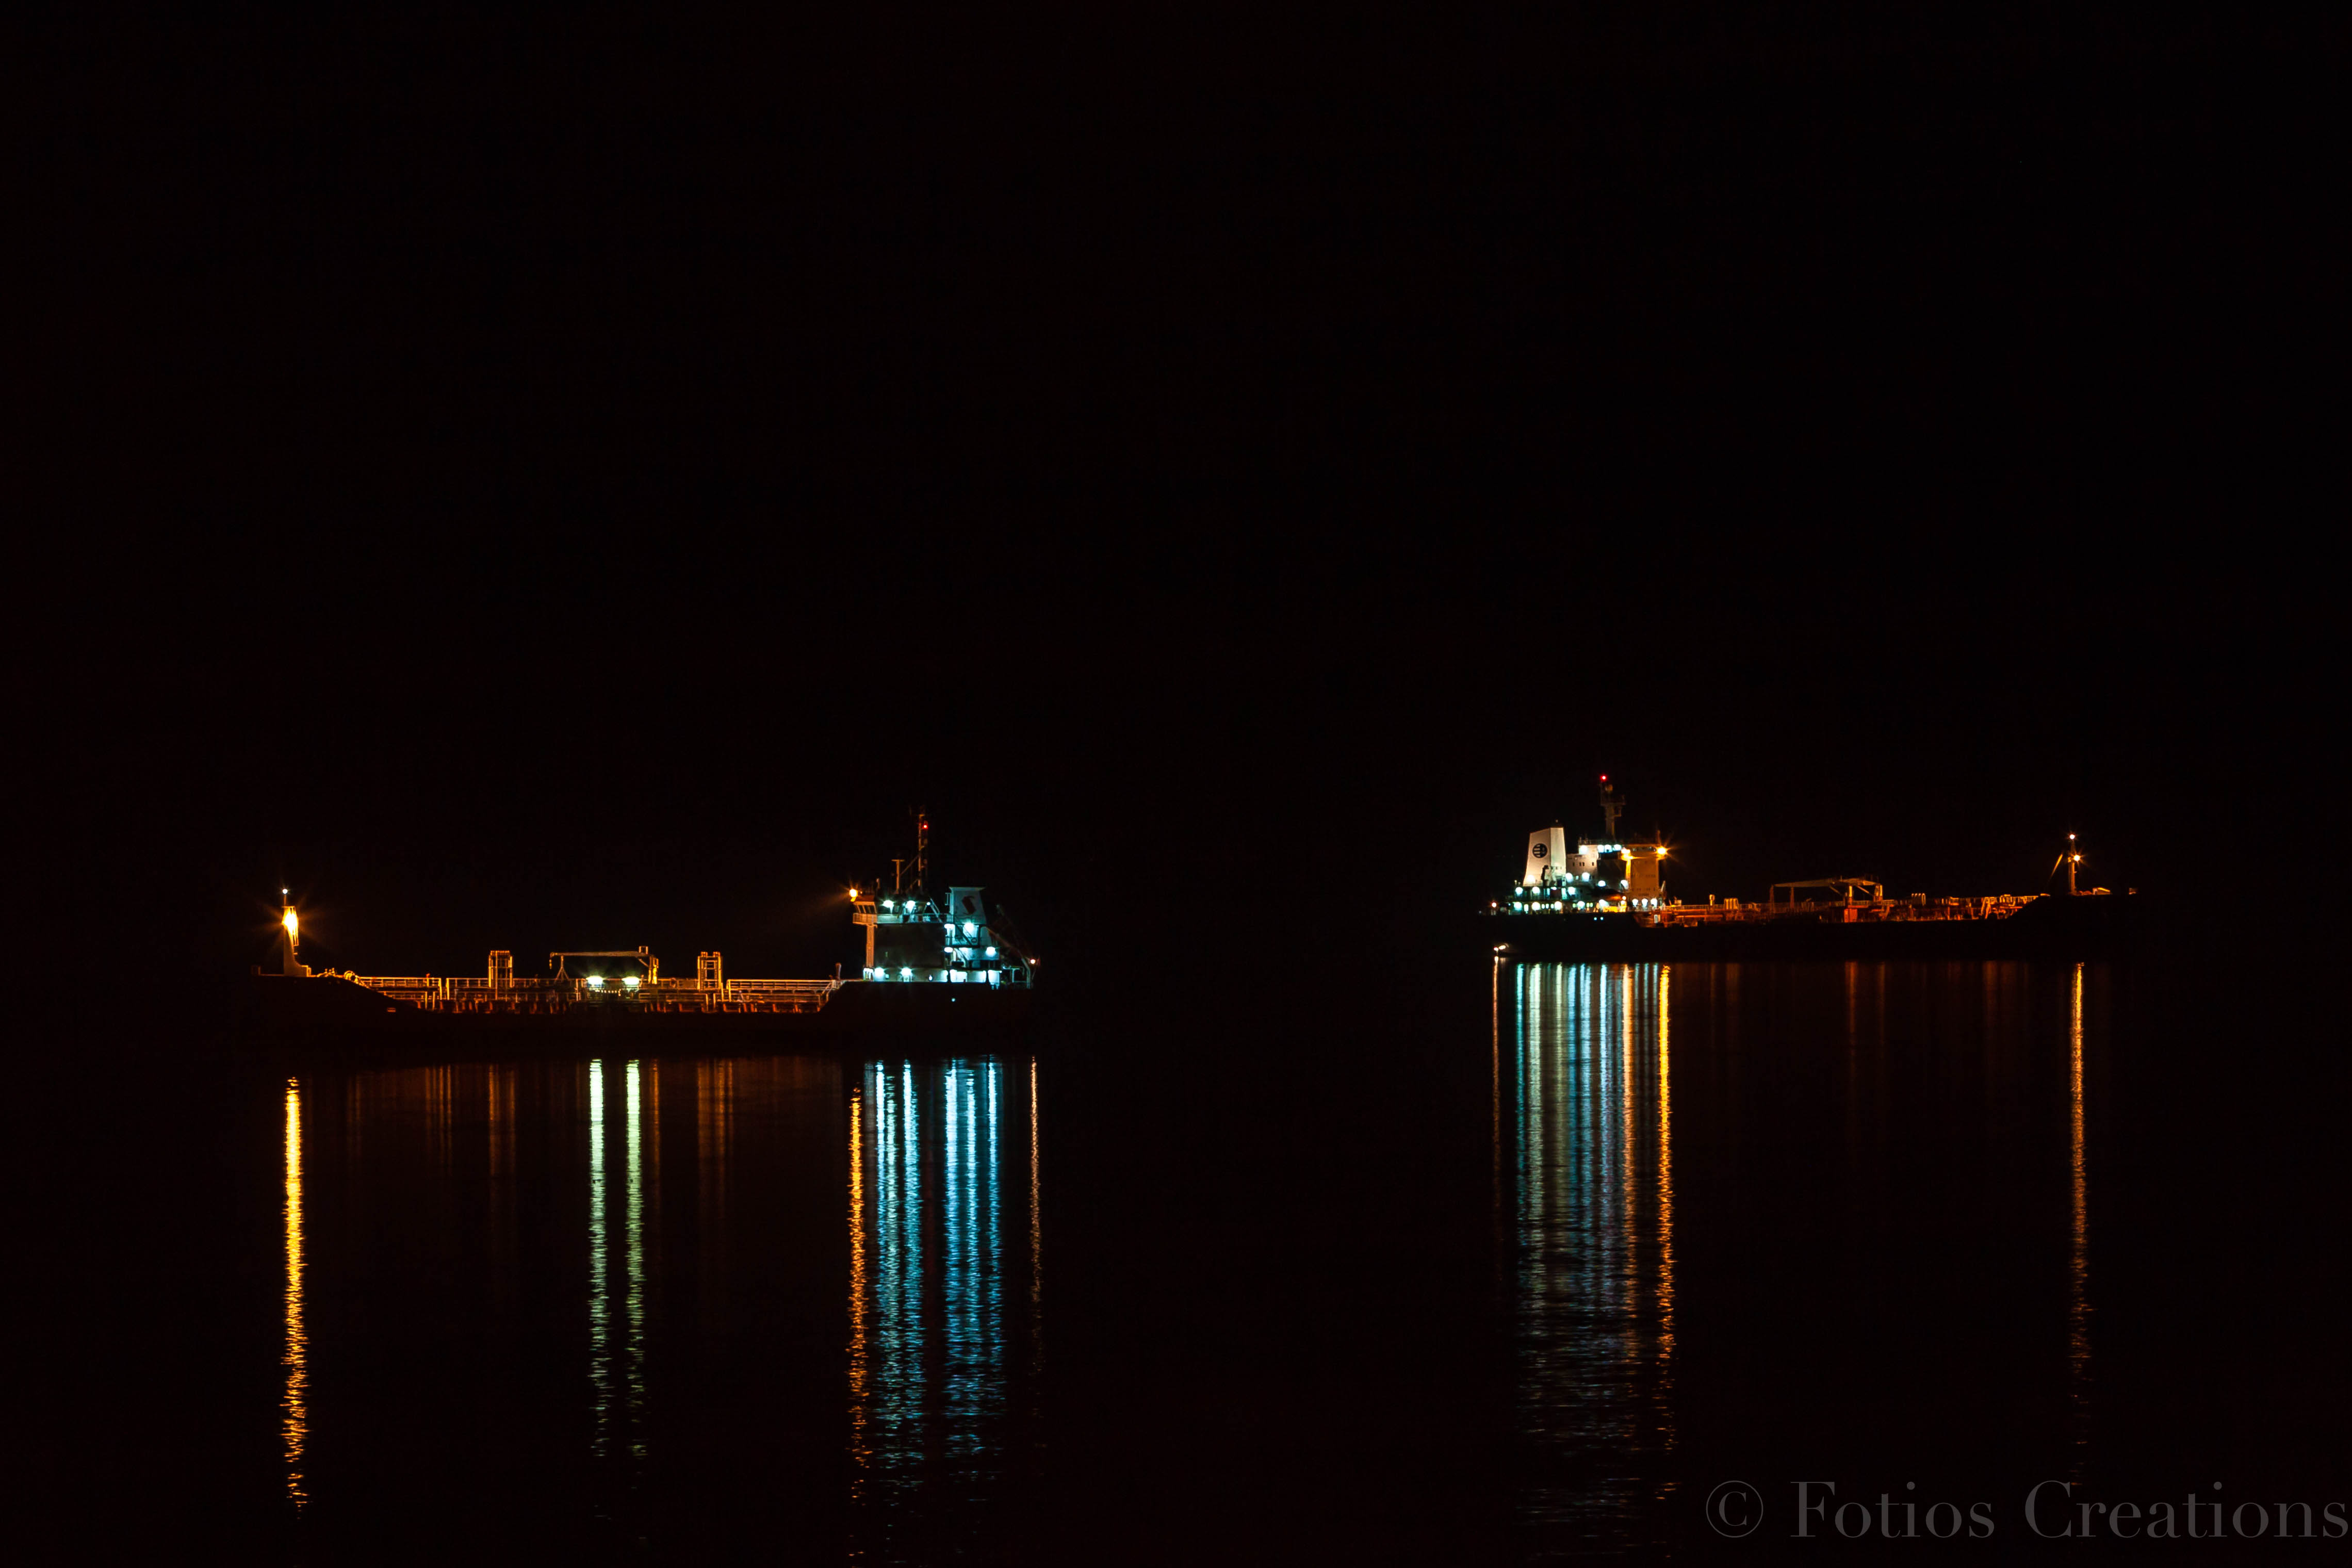 Ships in the dark